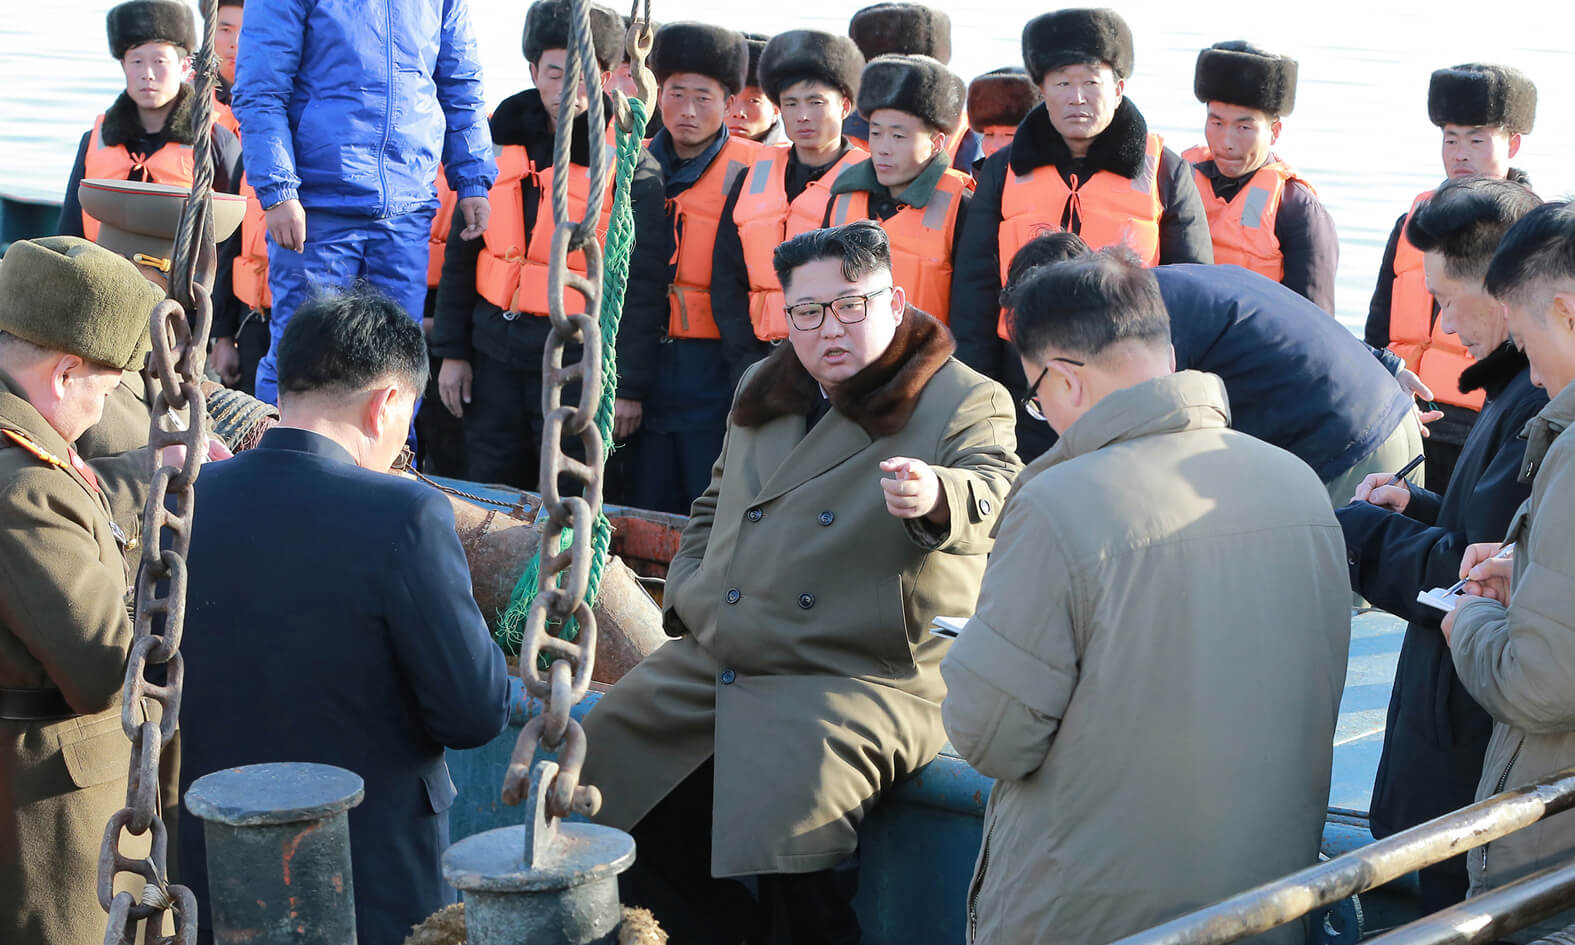 Kim Jong Un giving on-site guidance at a fishing station in November 2018